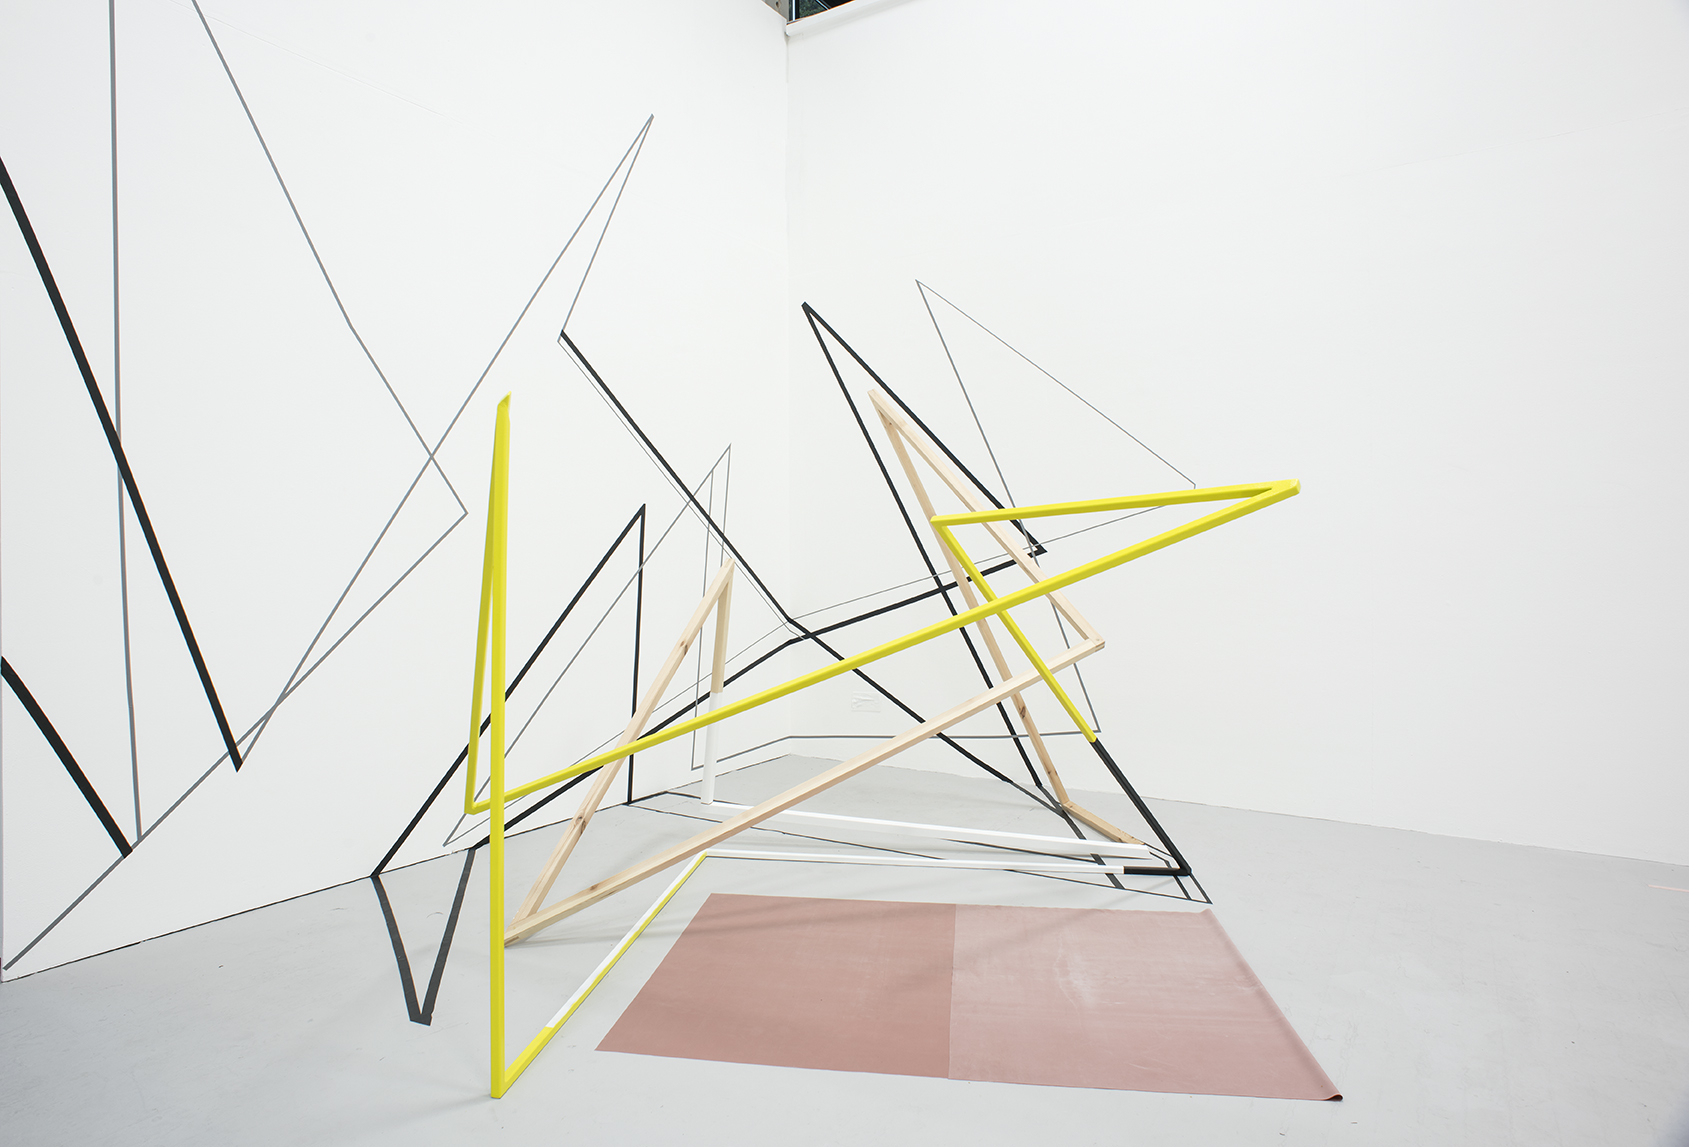 Andrea V Wright - Vertical Ascension - Steel, Wood, Paint, Tape & Latex Rubber - 330 x 260 x 290 - 2017 - £2,800 .jpg